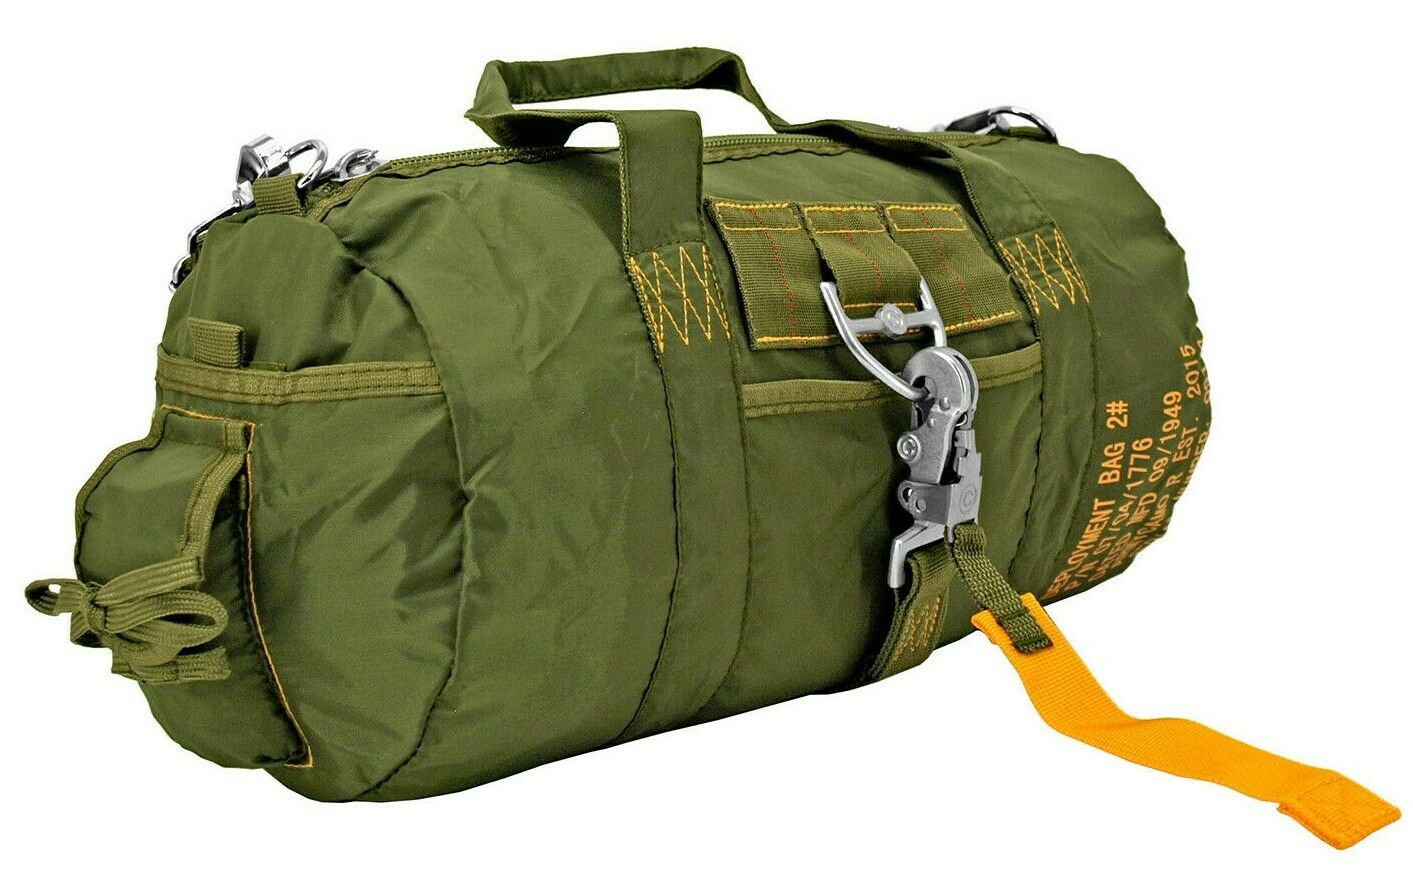 AC-USA Tactical Parachute Duffle Bag Military Flight Style Camp Travel Bag ODG